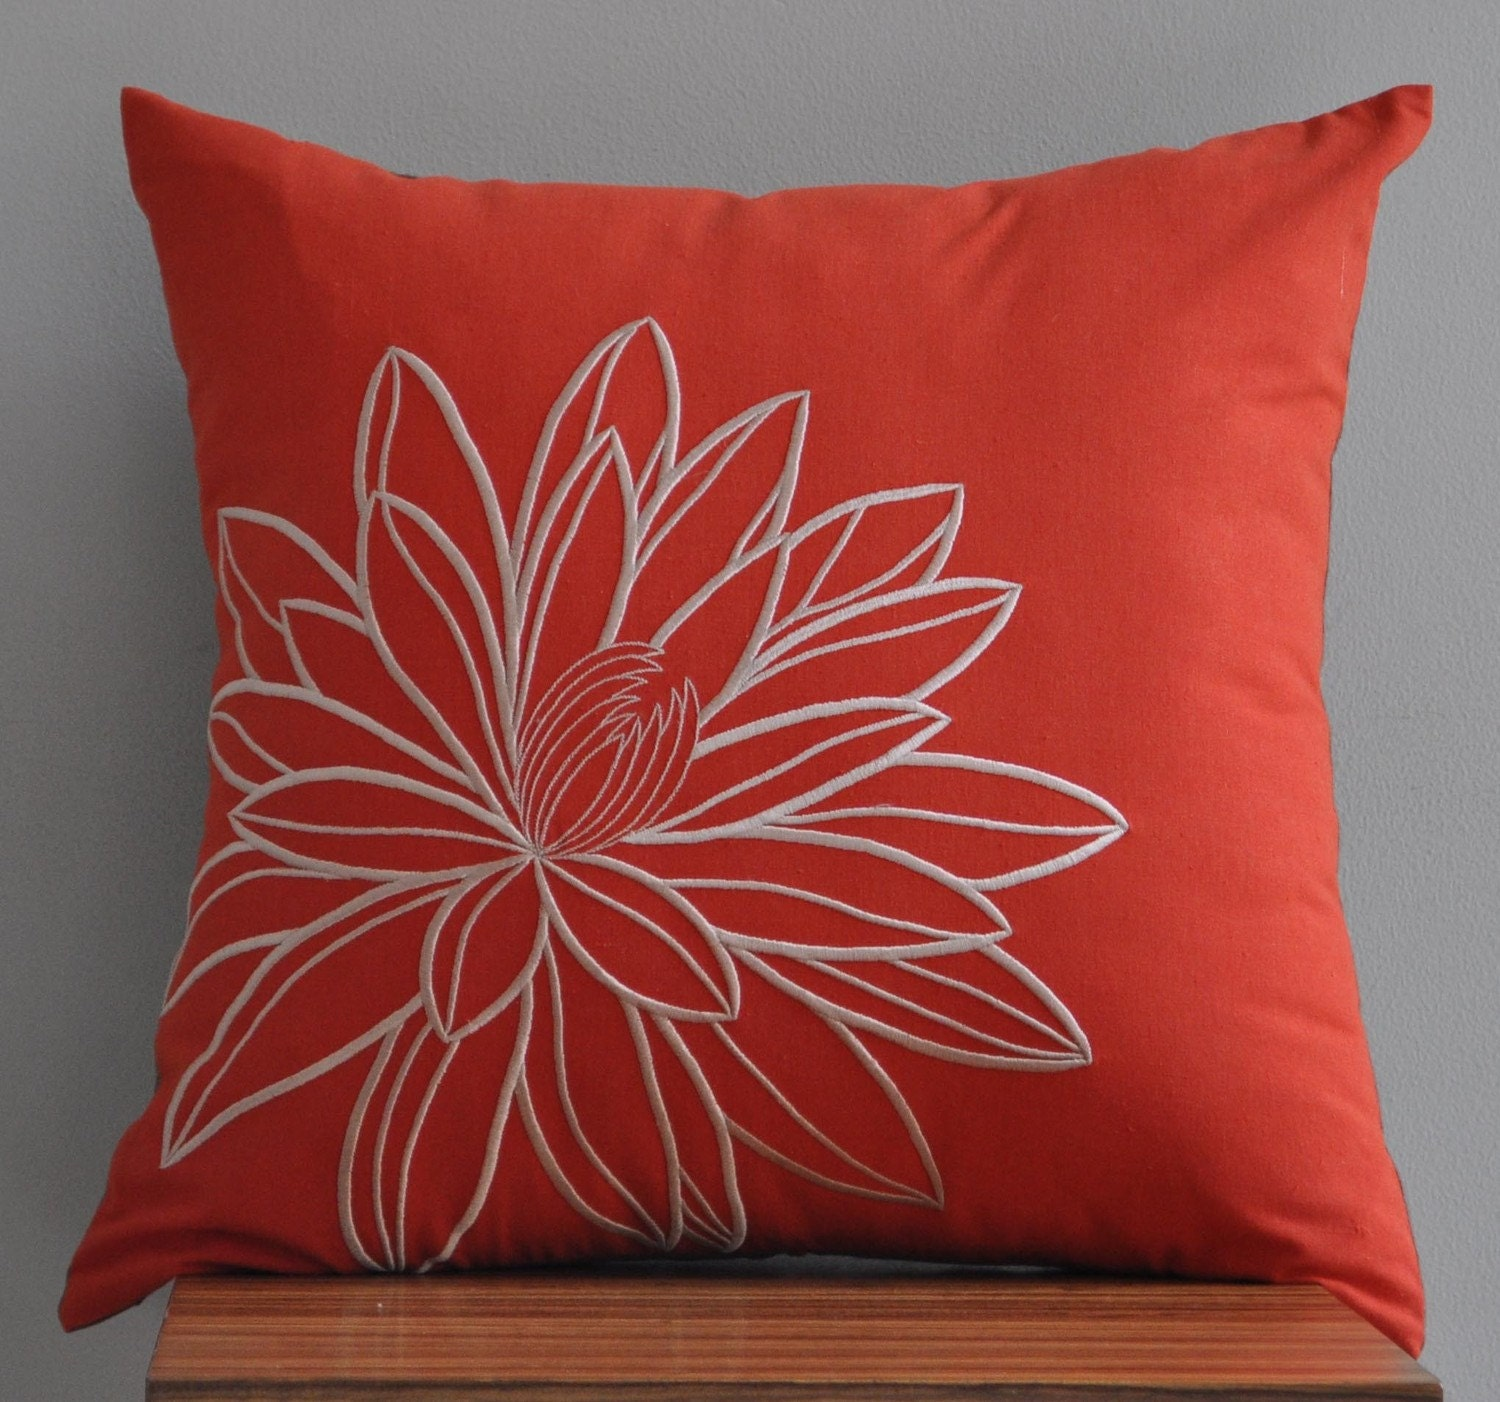 "Orange Lotus -Throw Pillow Cover -18"" x 18"" Decorative Pillow Cover - Red Orange/Vermillion Linen with Beige Lotus Embroidery"